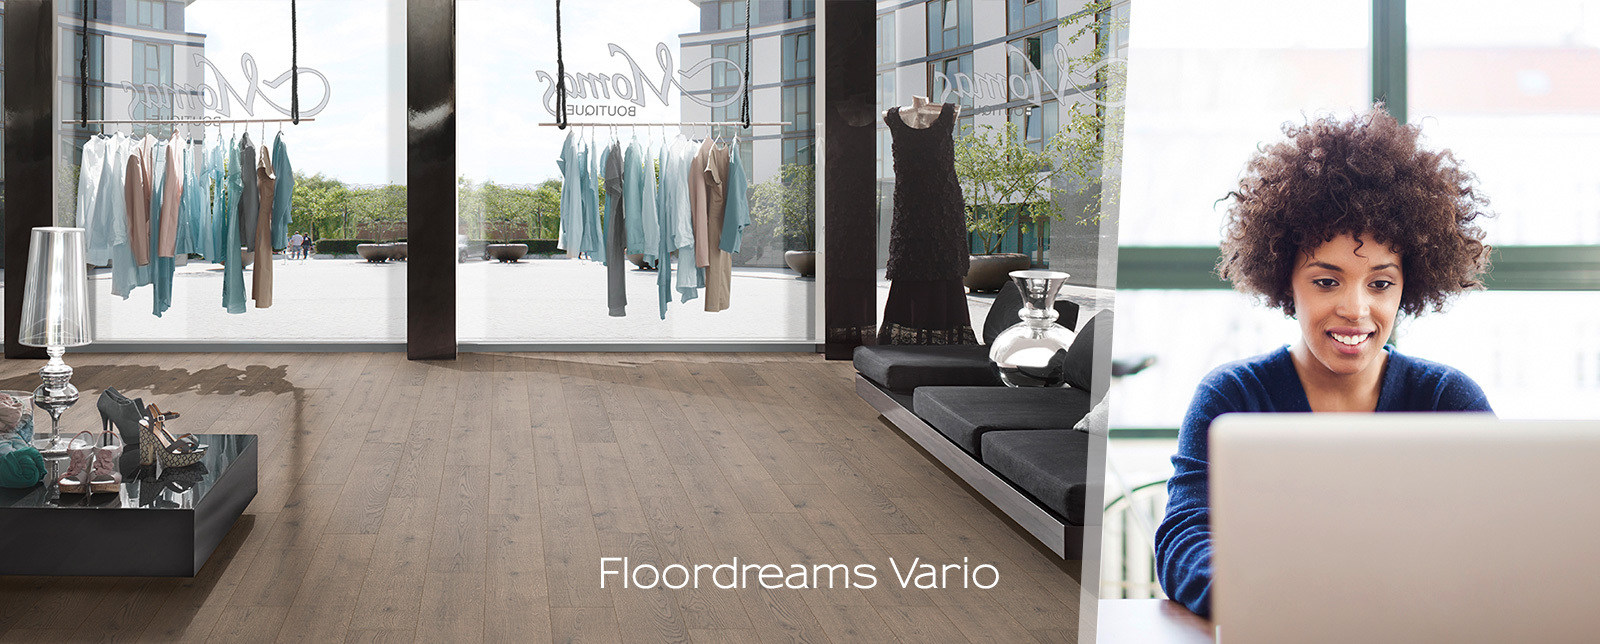 Колекция ламинат - Floordreams vario